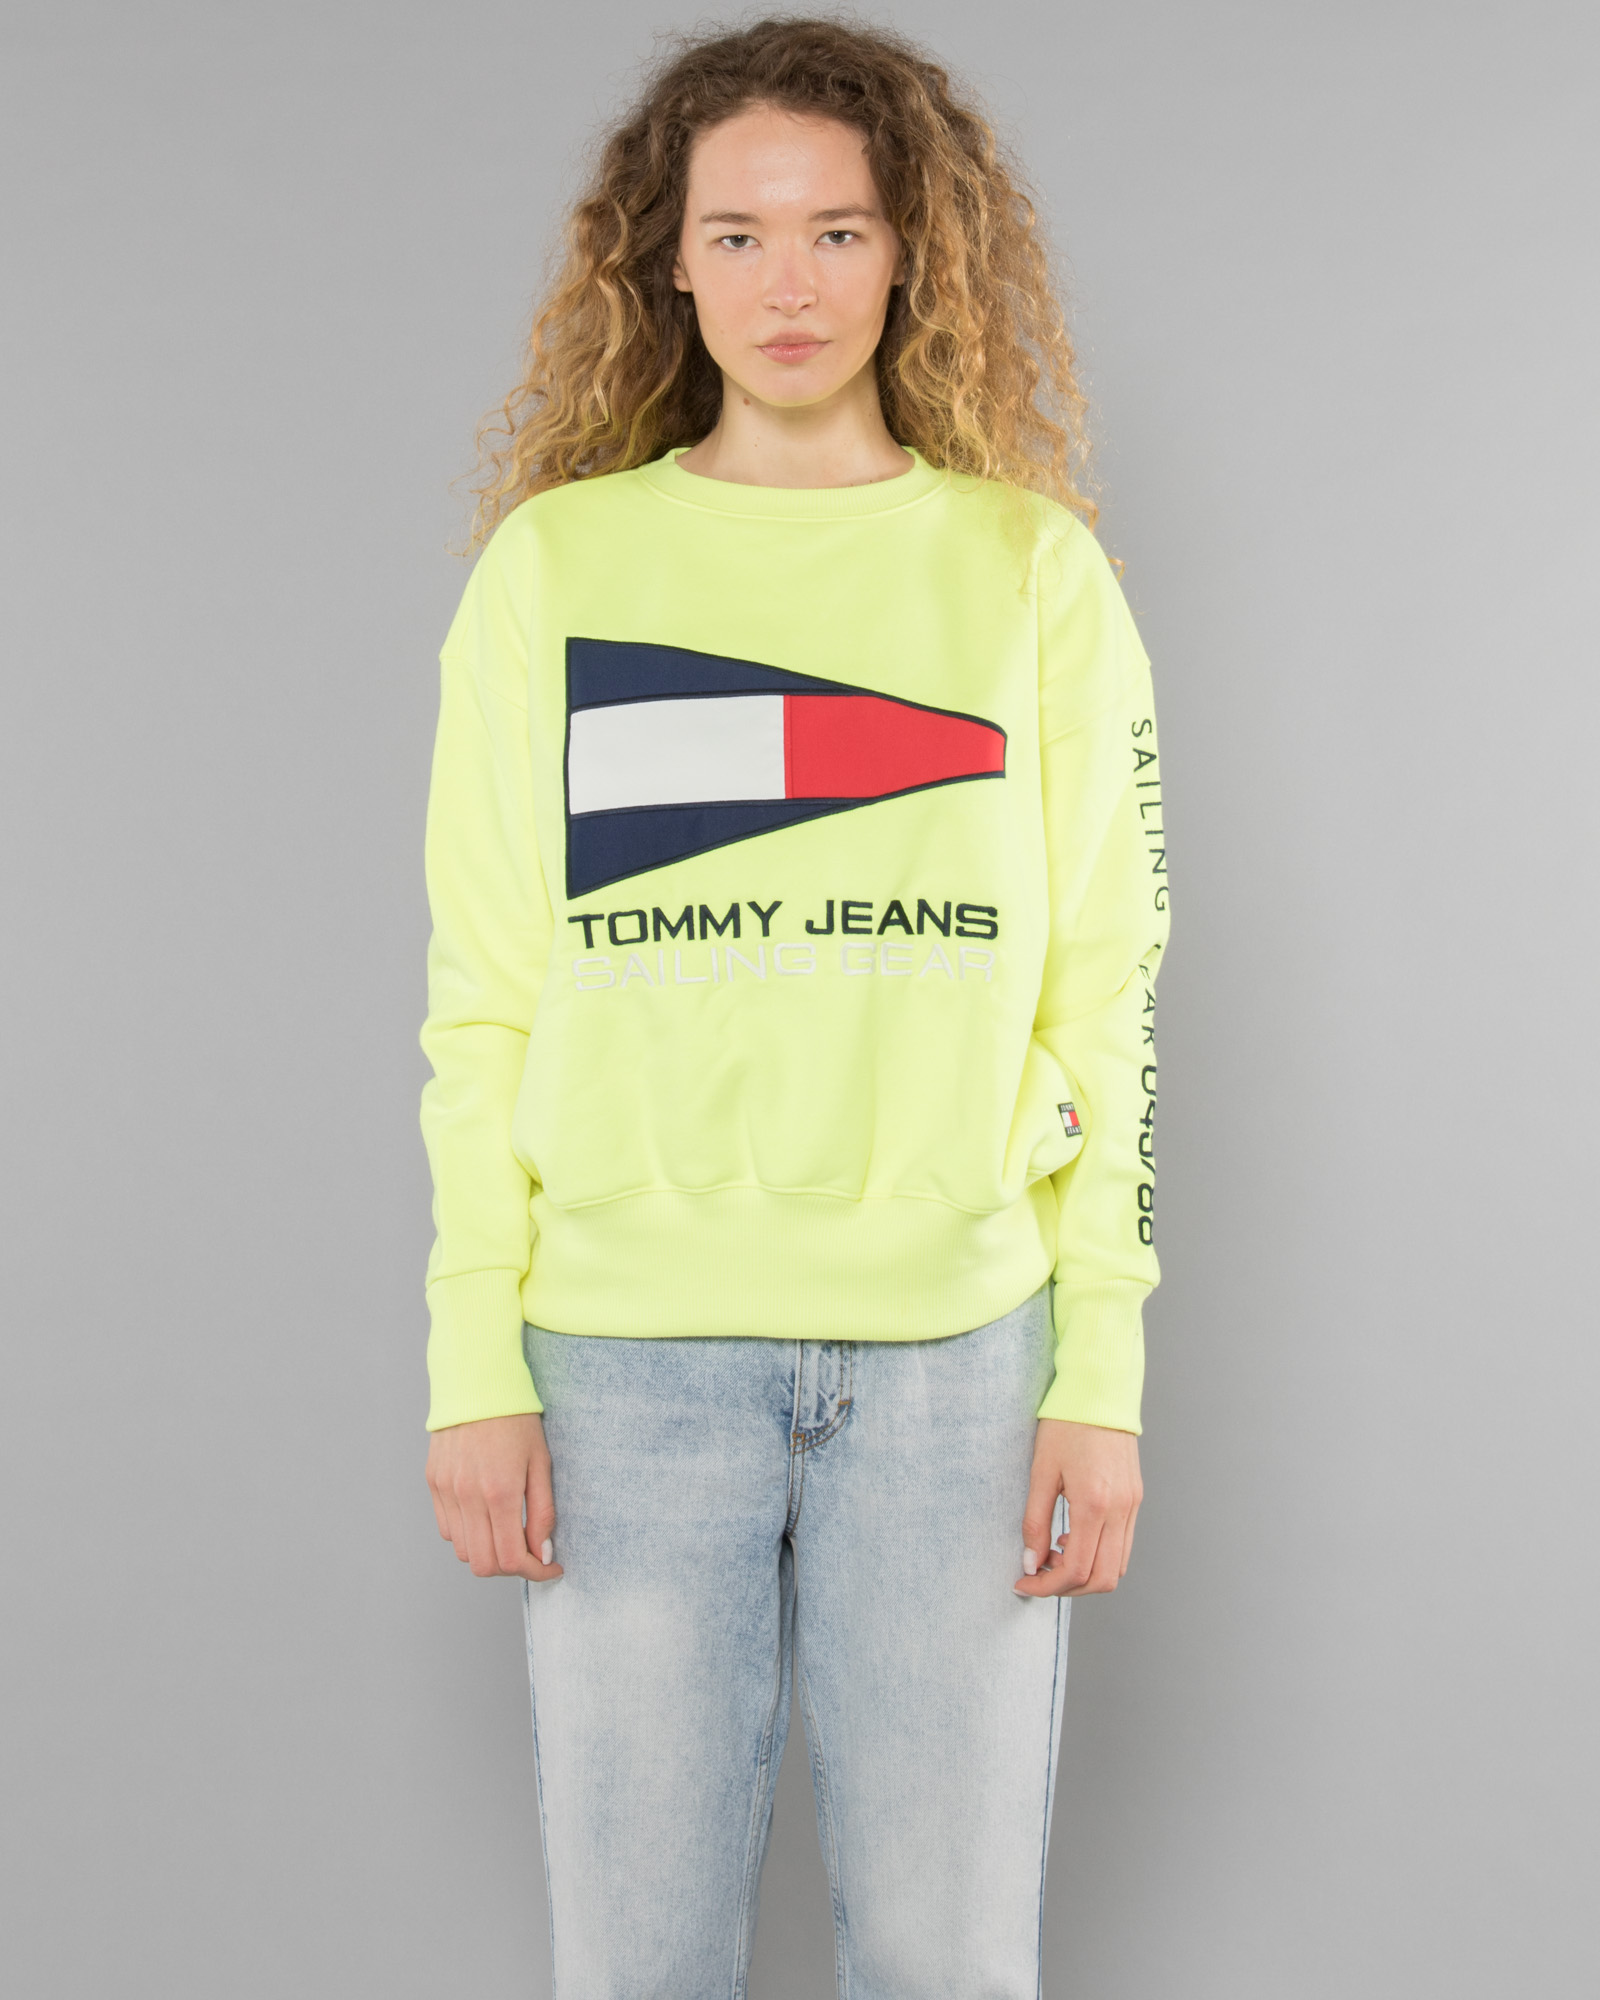 b6b342ce Tommy Jeans 90s Capsule 5.0 Long Sleeve T Shirt With Logo Sleeve